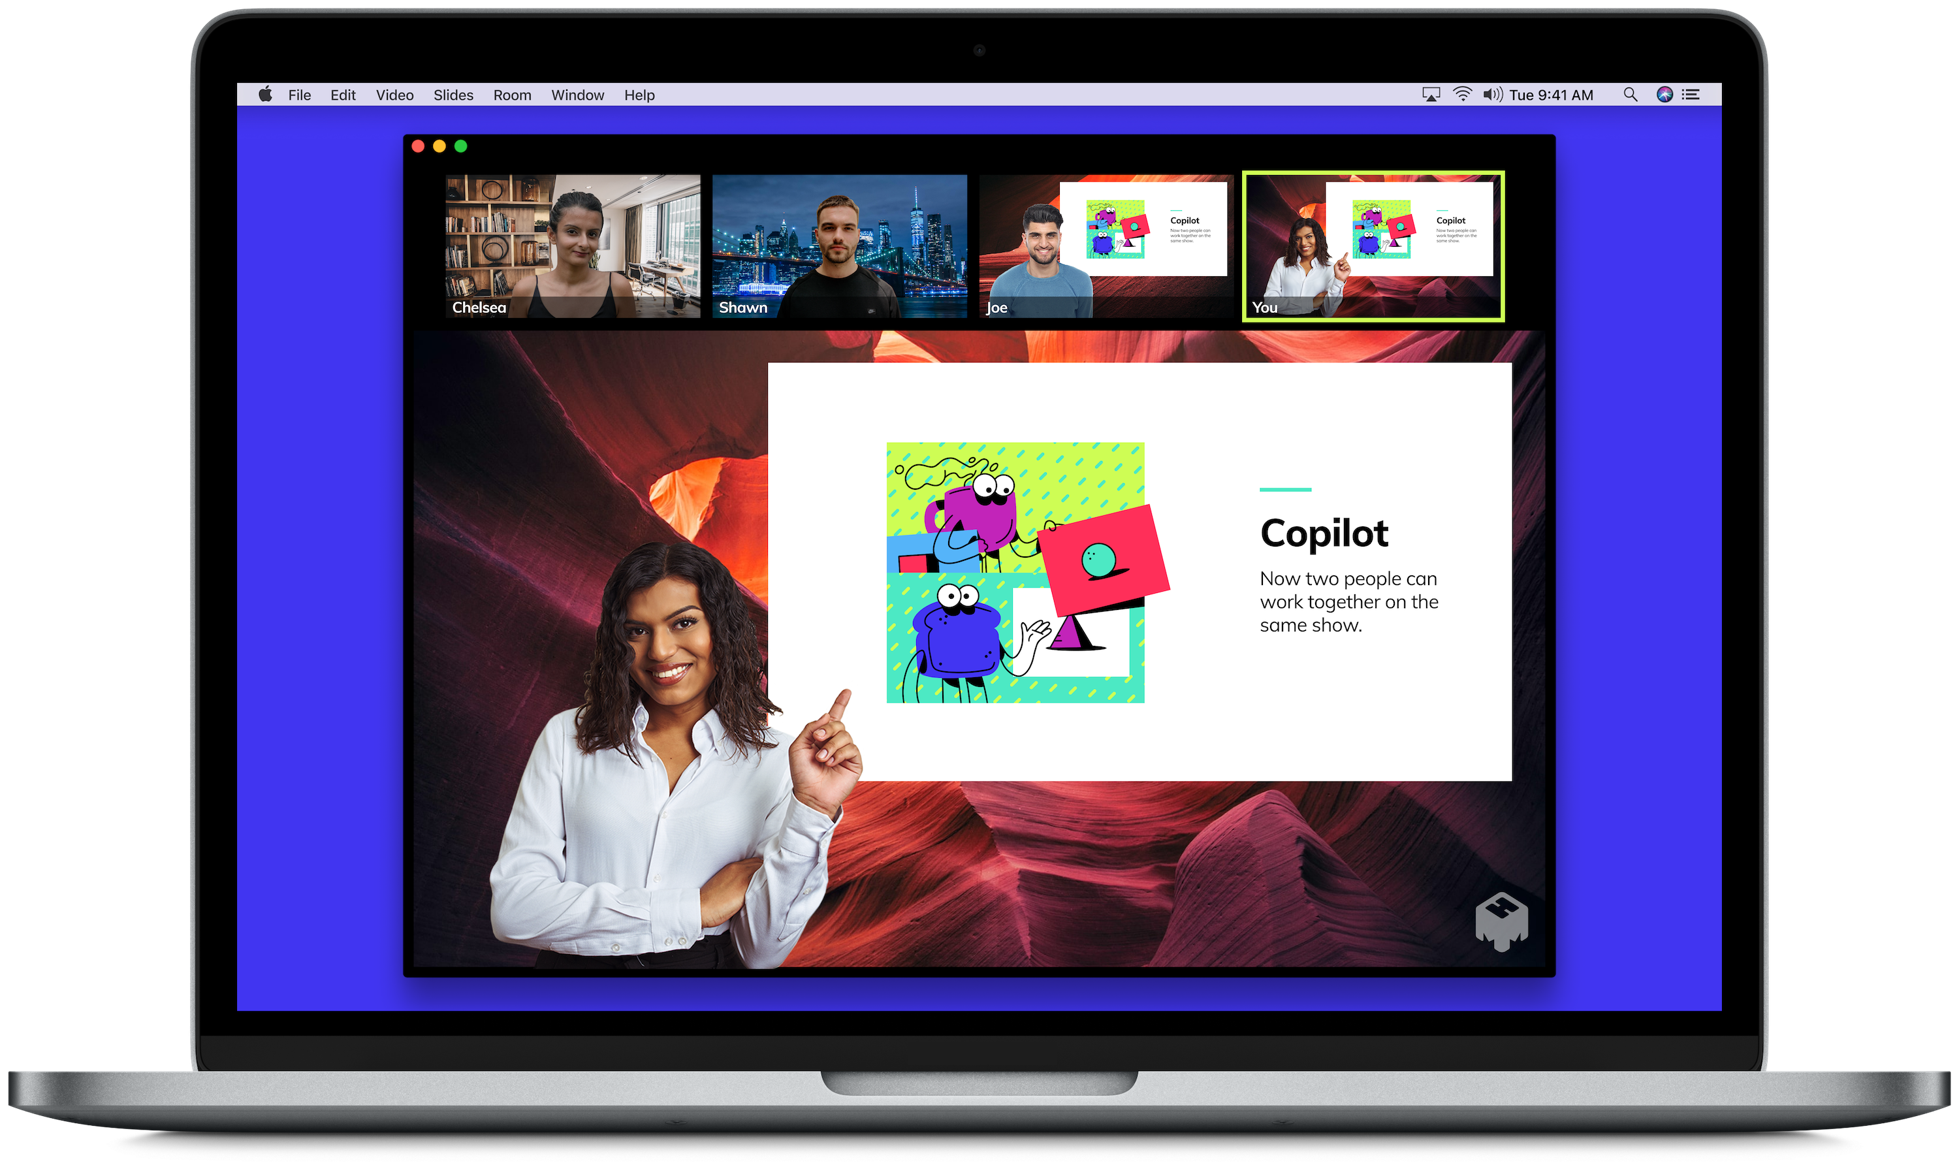 mmhmm's Copilot feature allows multiple people to present onscreen at the same time.